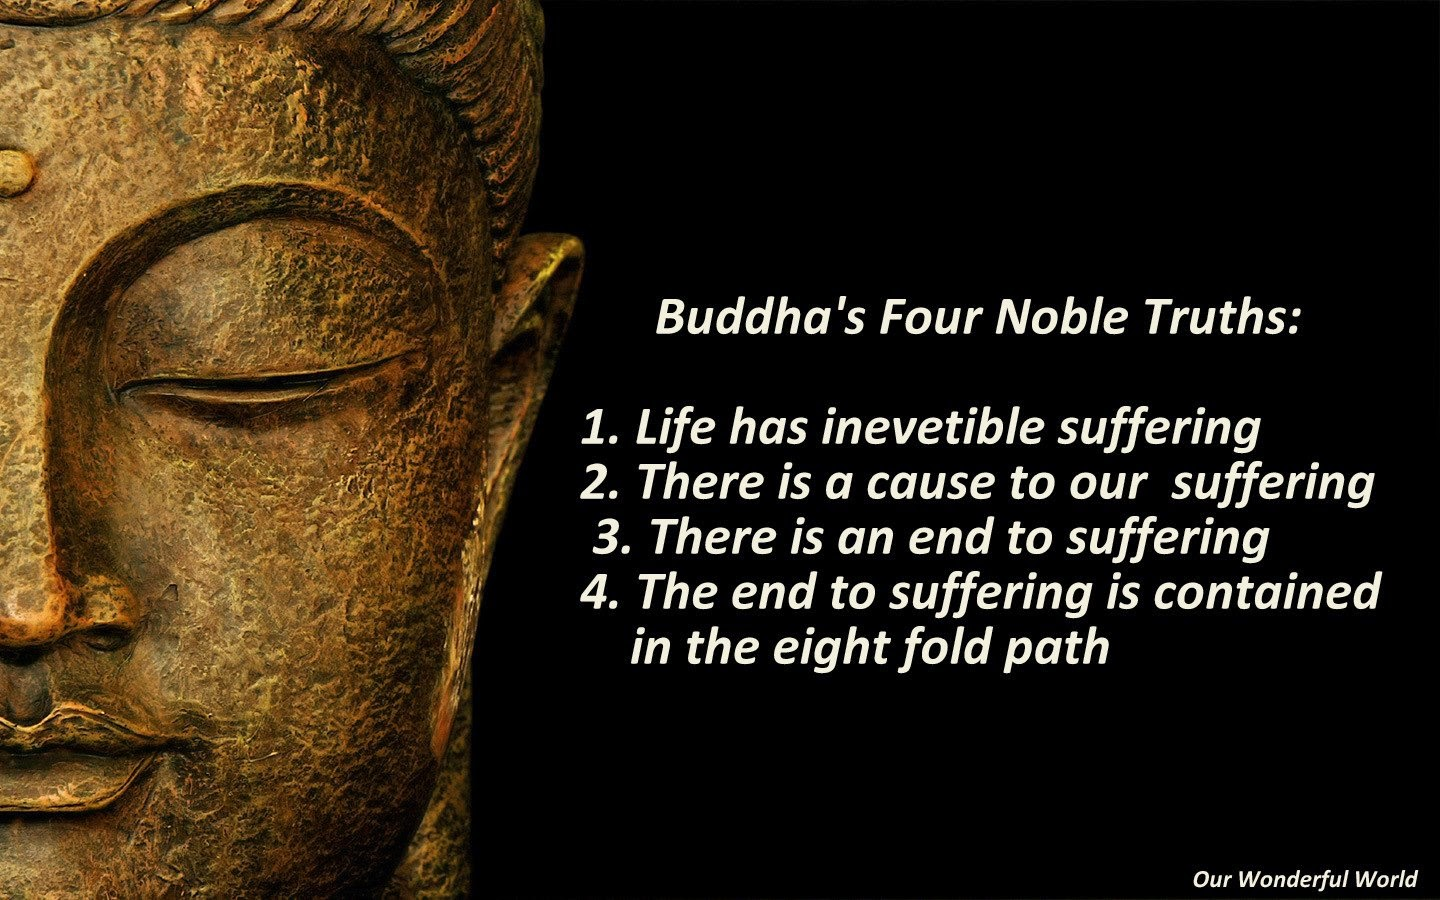 an analysis of the noble truths in the buddhist religion Free essay: critically discuss the four noble truths of buddhism, explaining the reasons or arguments given by buddhism to support these truths and.